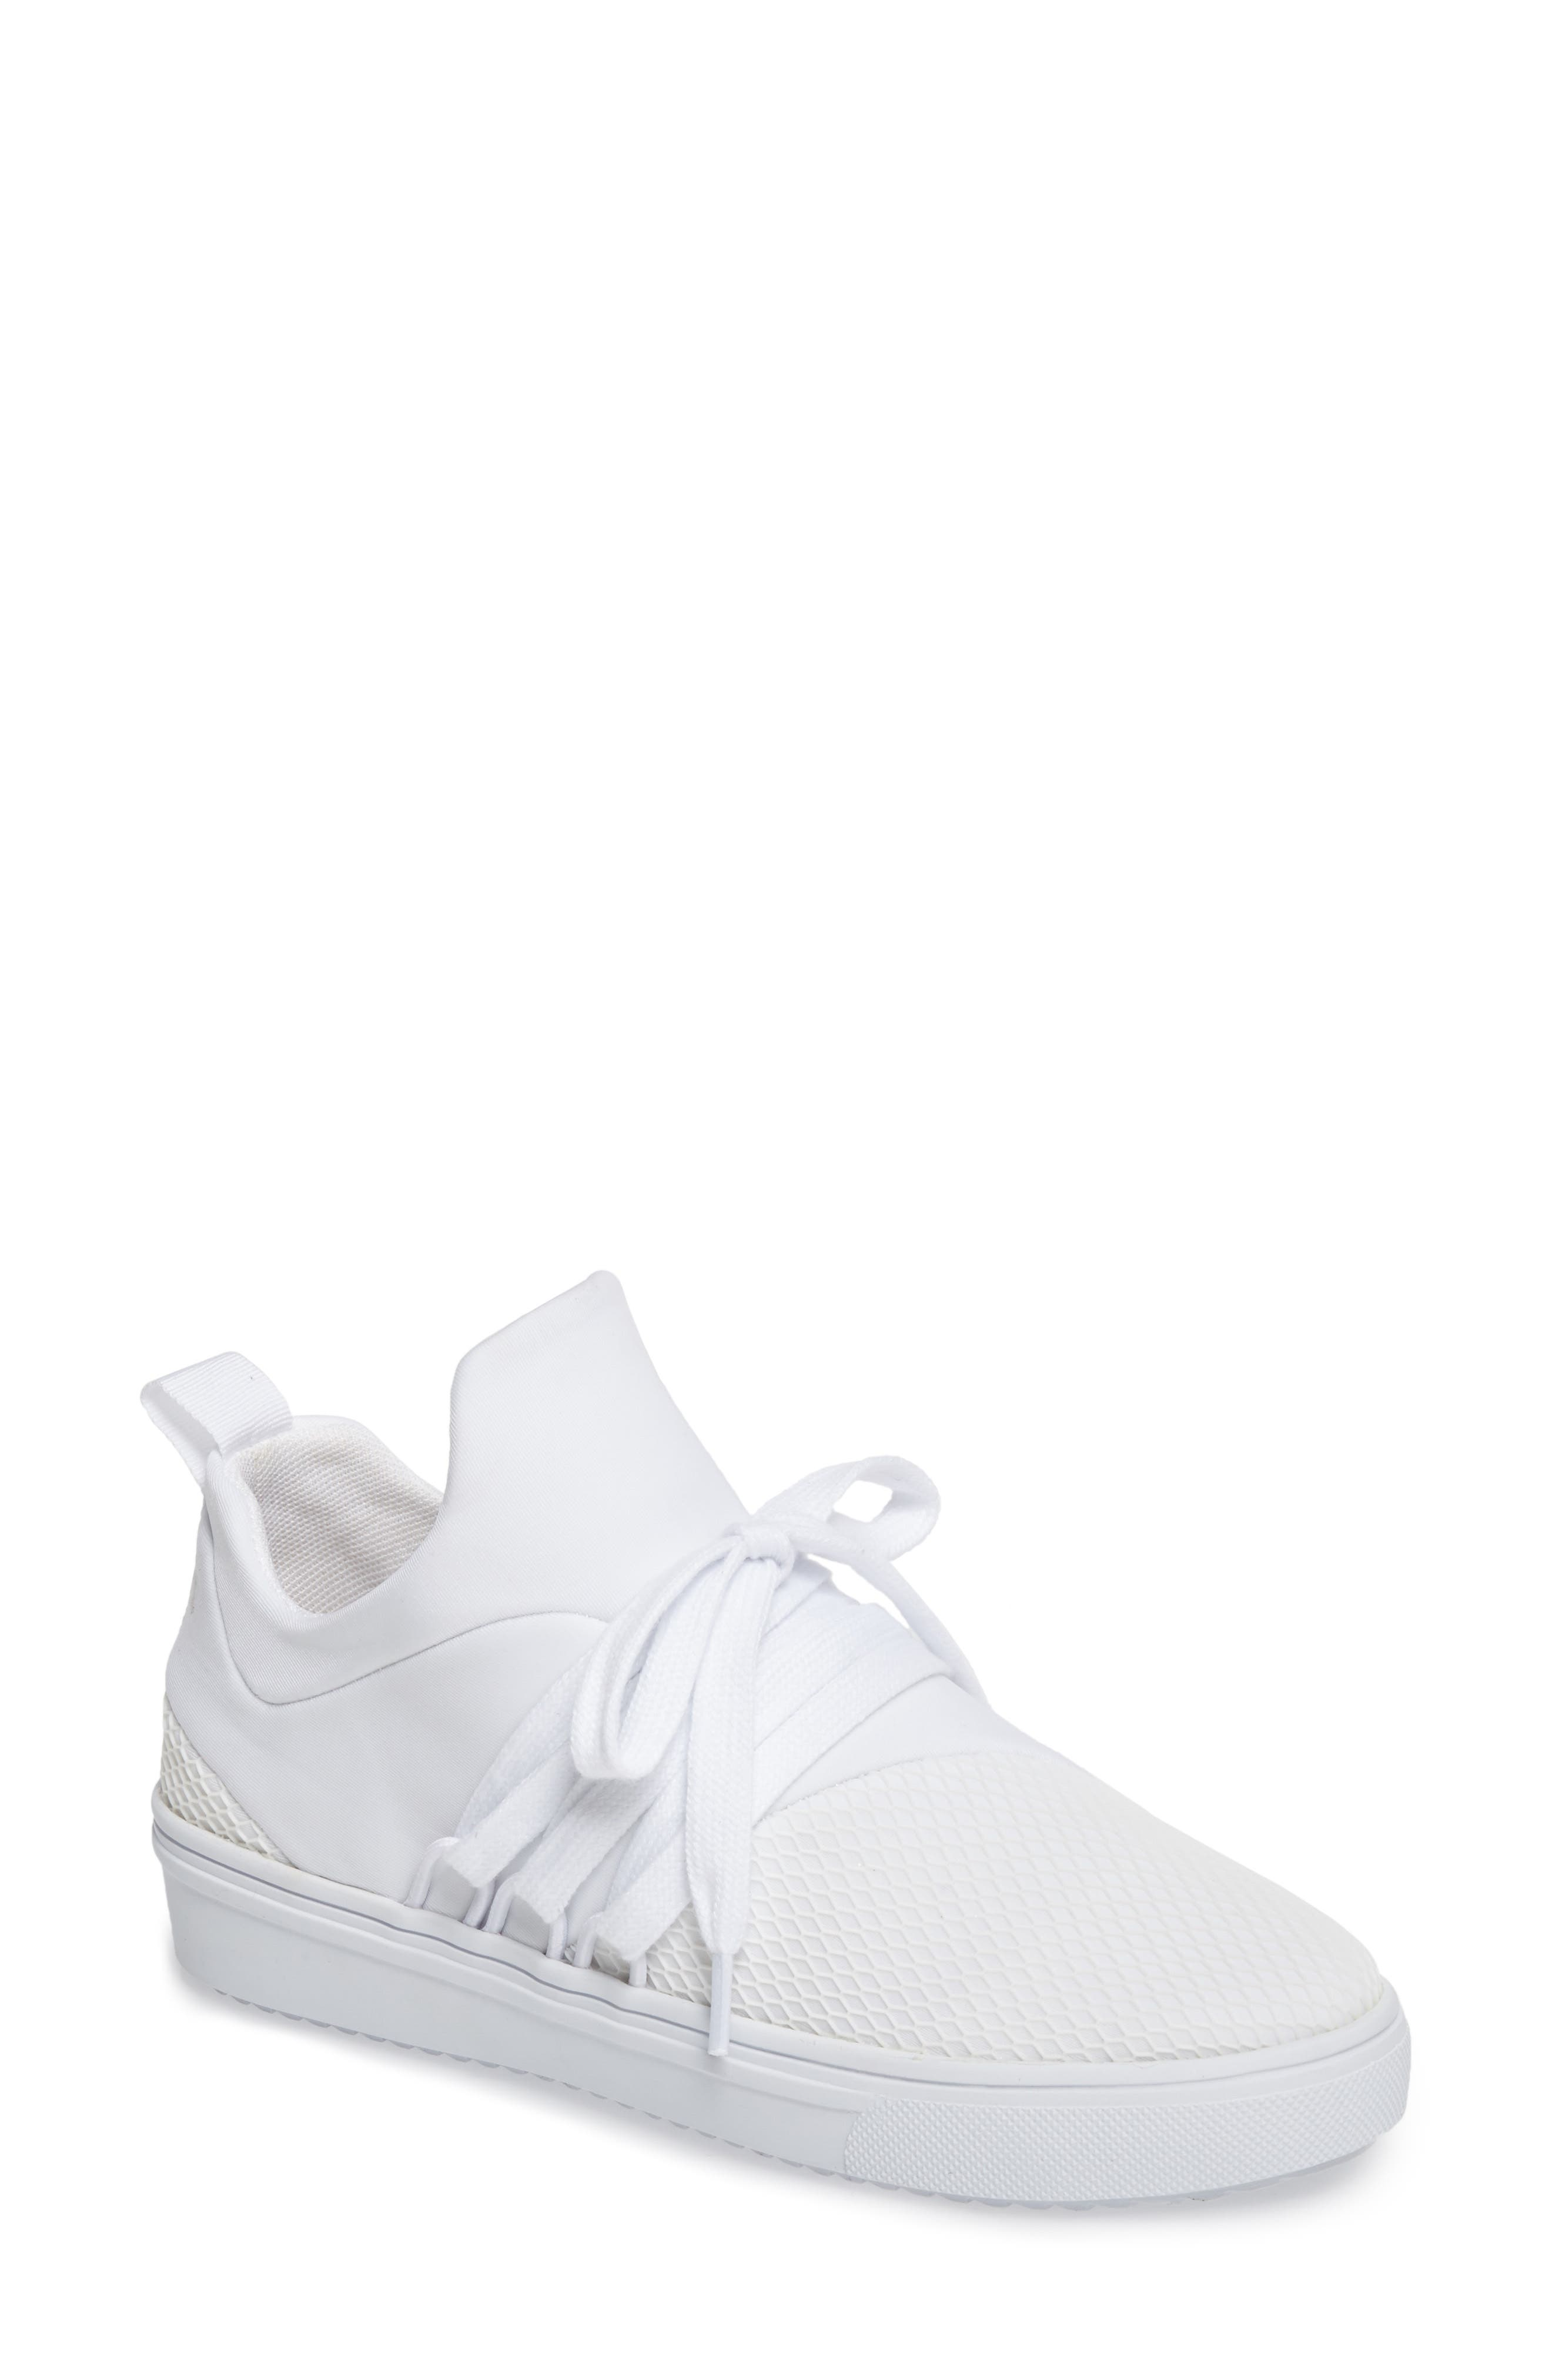 Lancer Sneaker,                         Main,                         color, 100